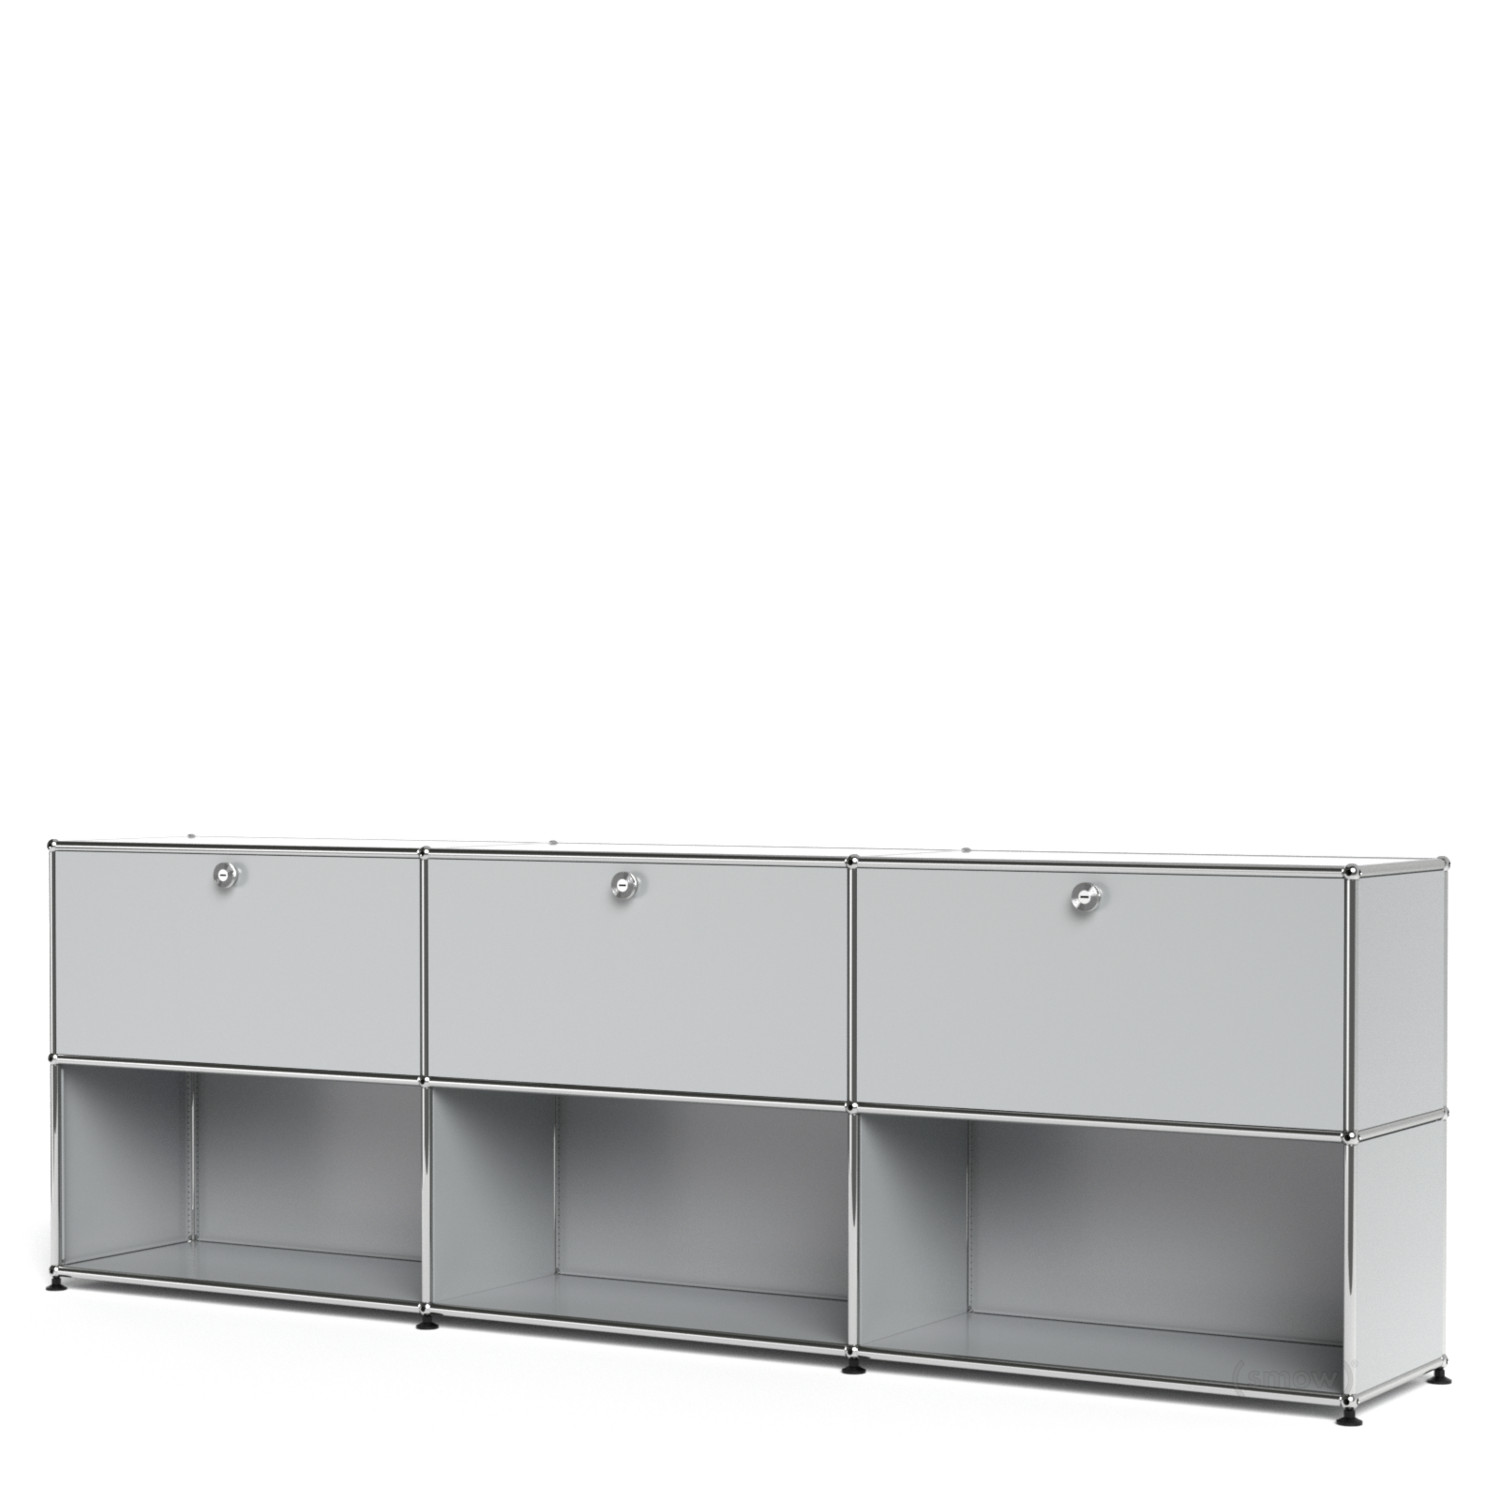 usm haller sideboard xl customisable light grey ral 7035 with 3 drop down doors open by. Black Bedroom Furniture Sets. Home Design Ideas